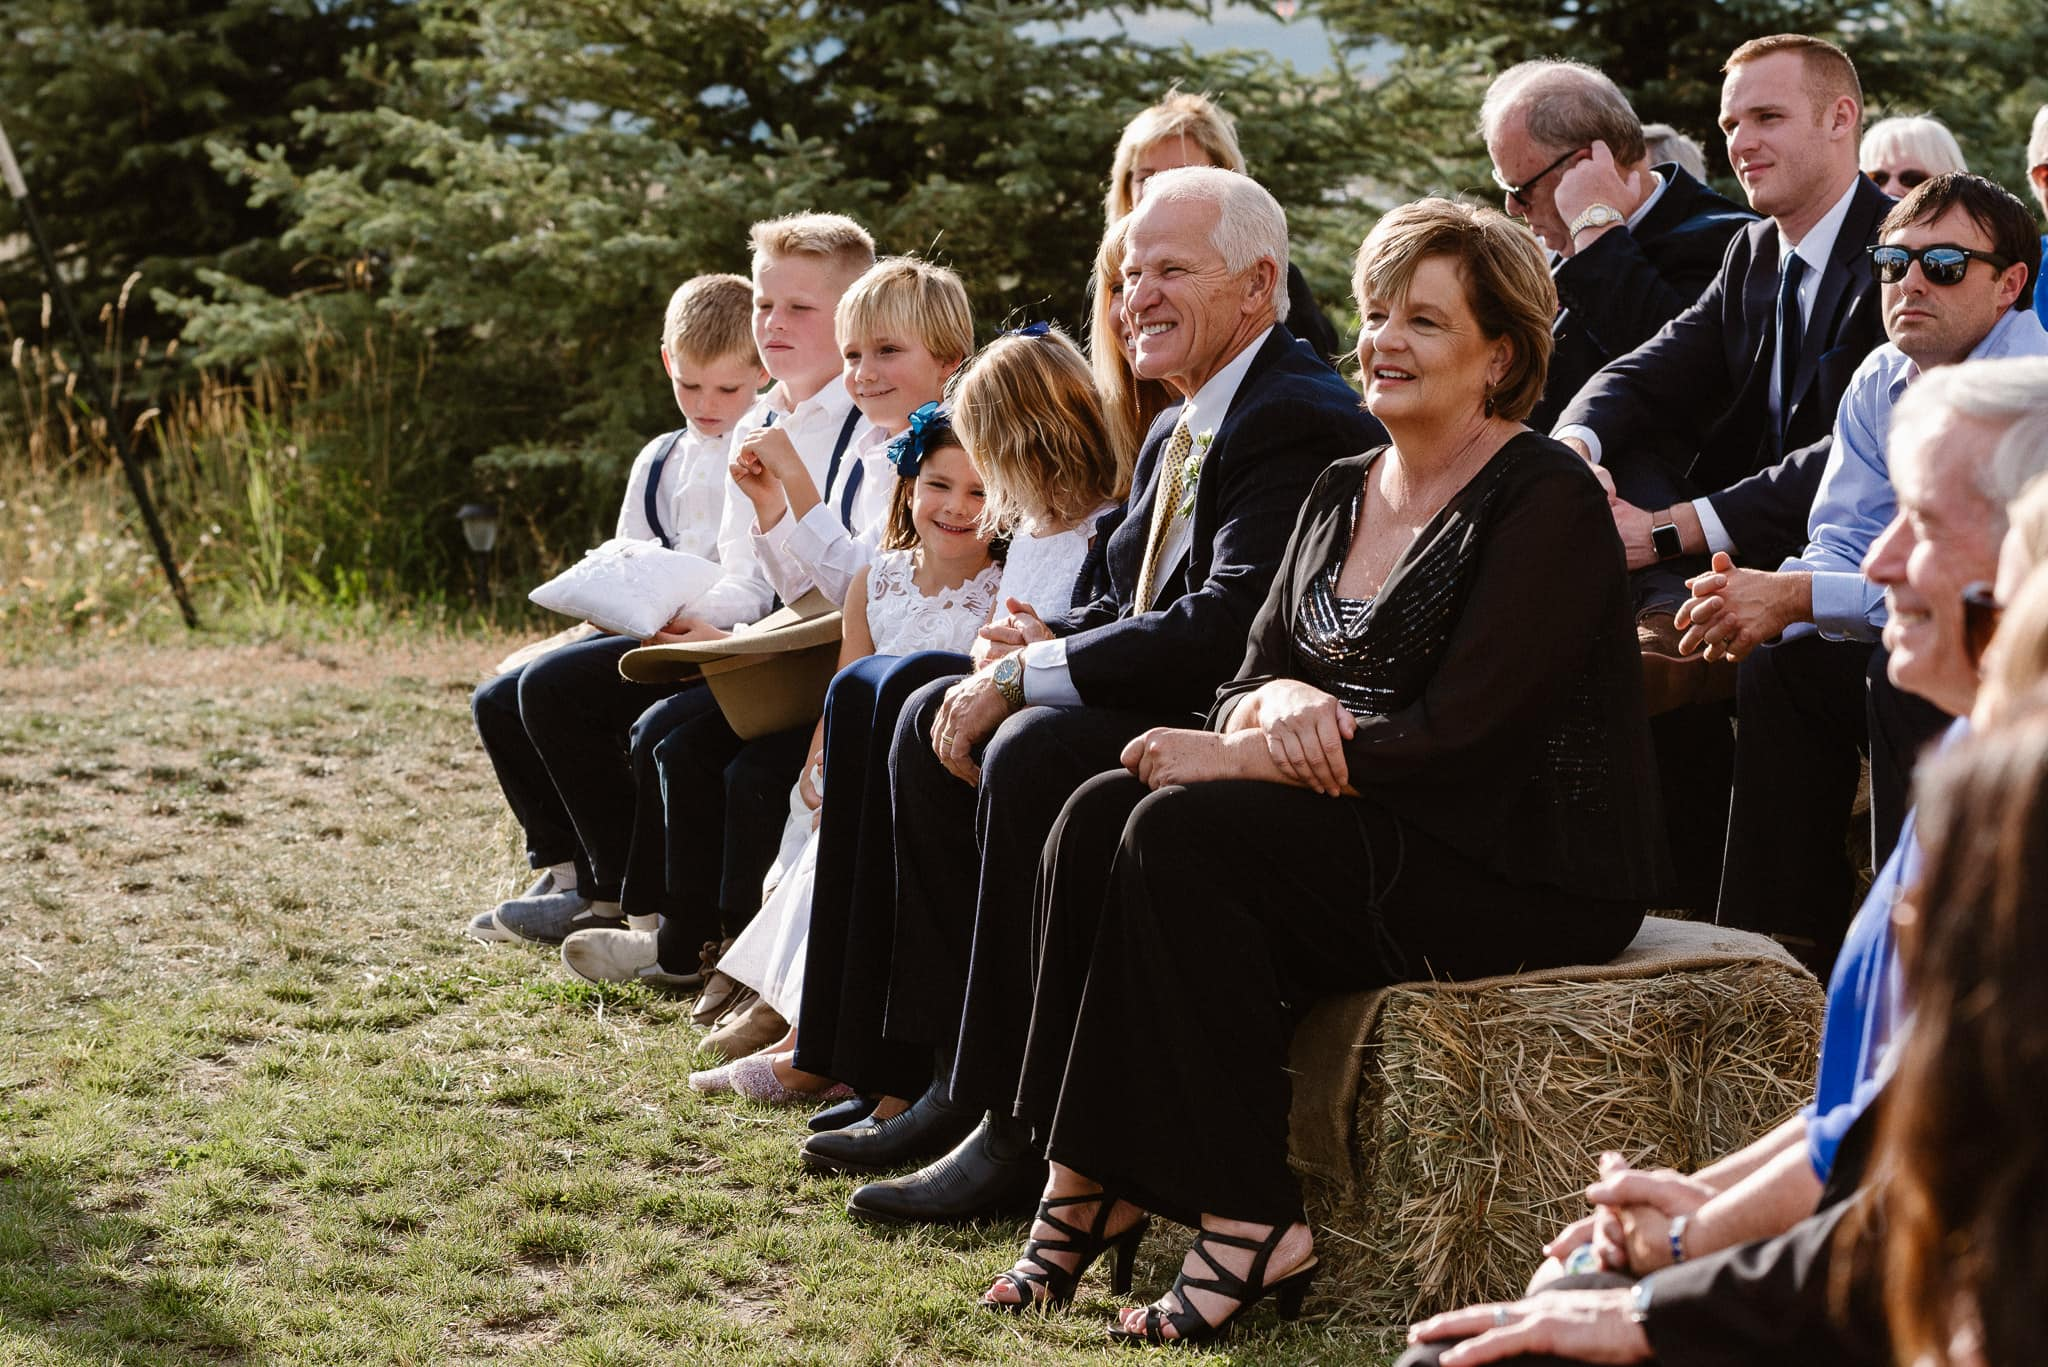 Steamboat Springs wedding photographer, La Joya Dulce wedding, Colorado ranch wedding venues, outdoor wedding ceremony, Colorado wedding, Rocky Mountain wedding, ranch wedding, guests watching ceremony, parents watching wedding ceremony